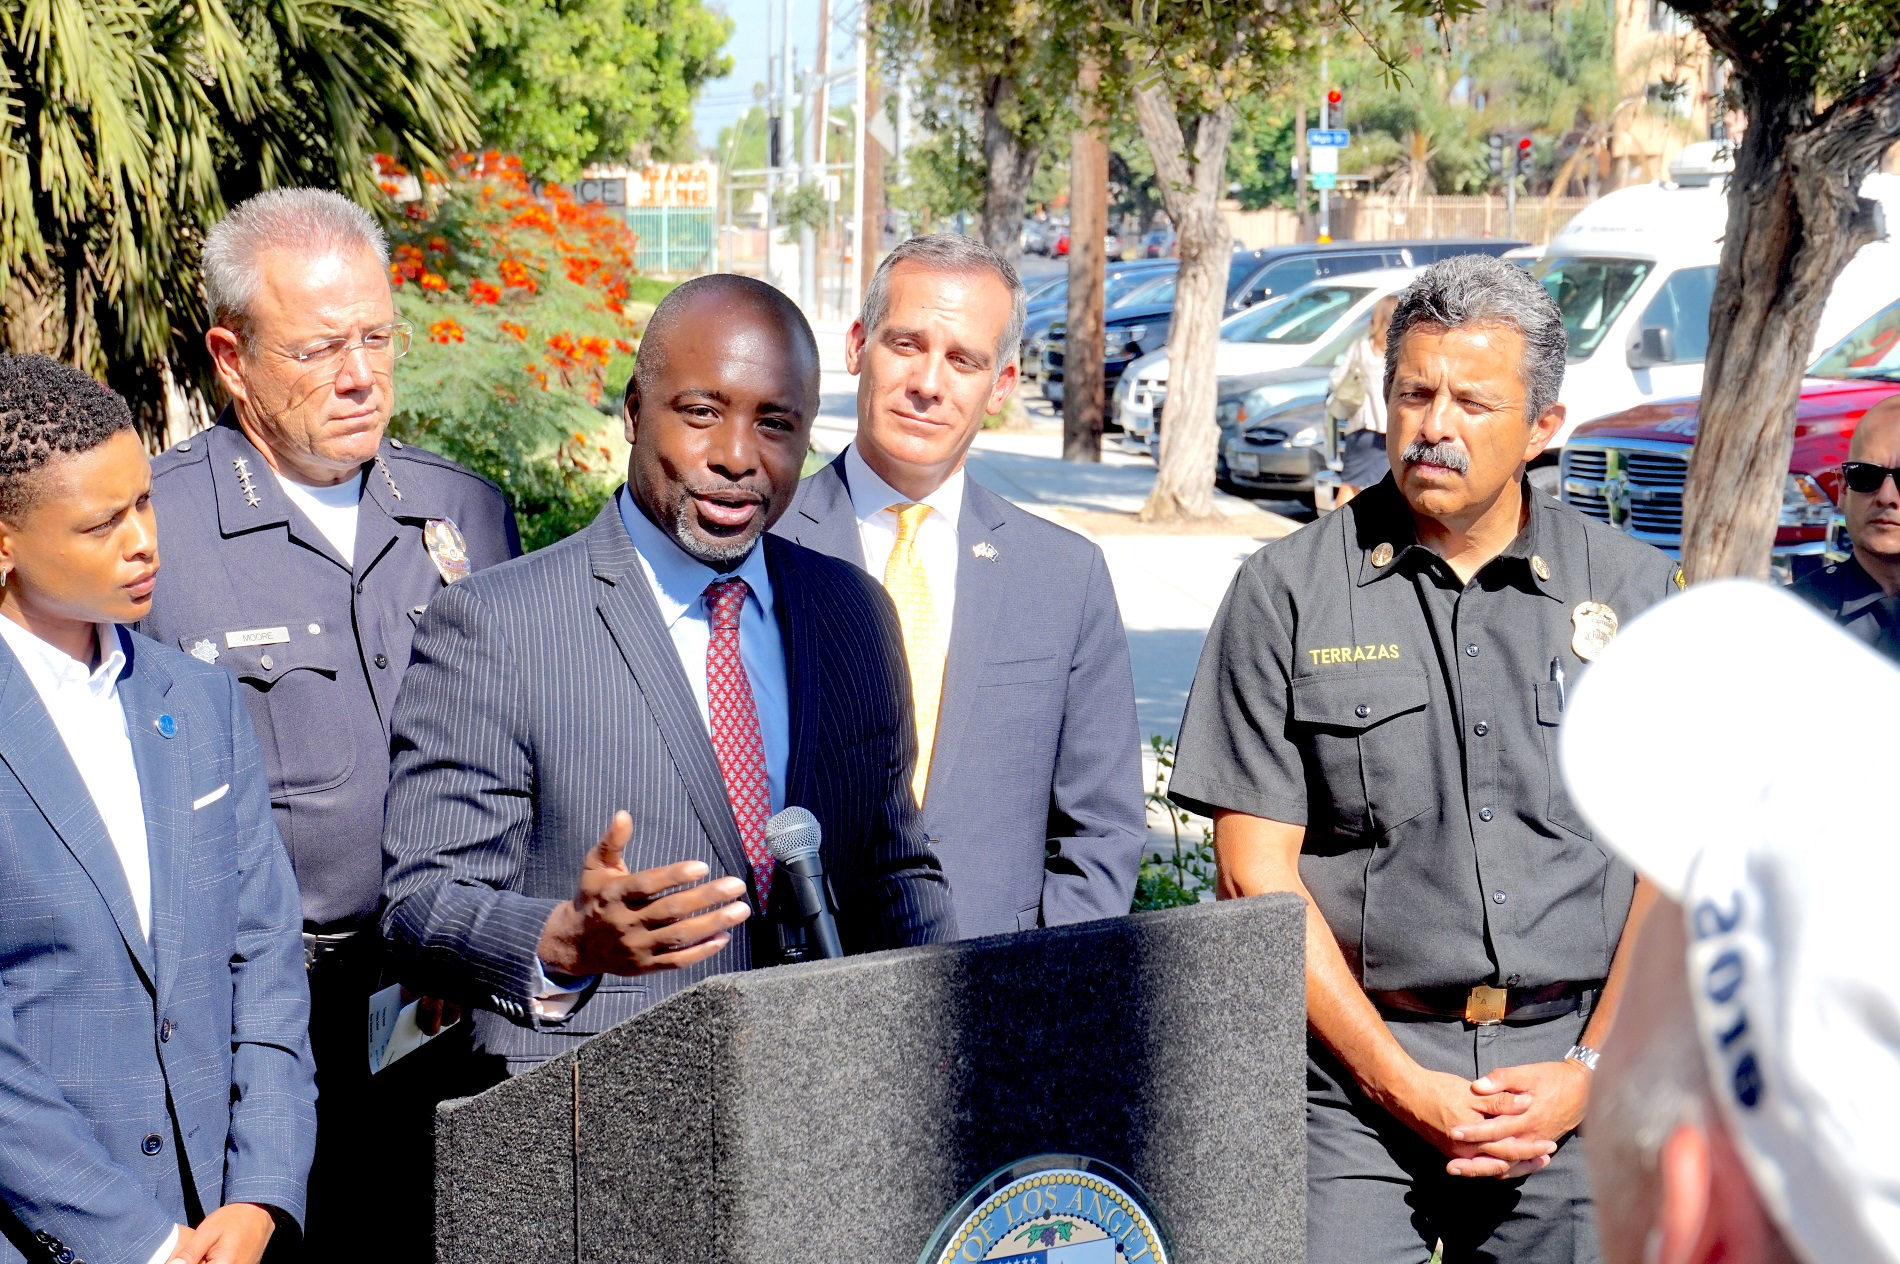 New City Task Force Cracks Down on Illegal Cannabis - Los